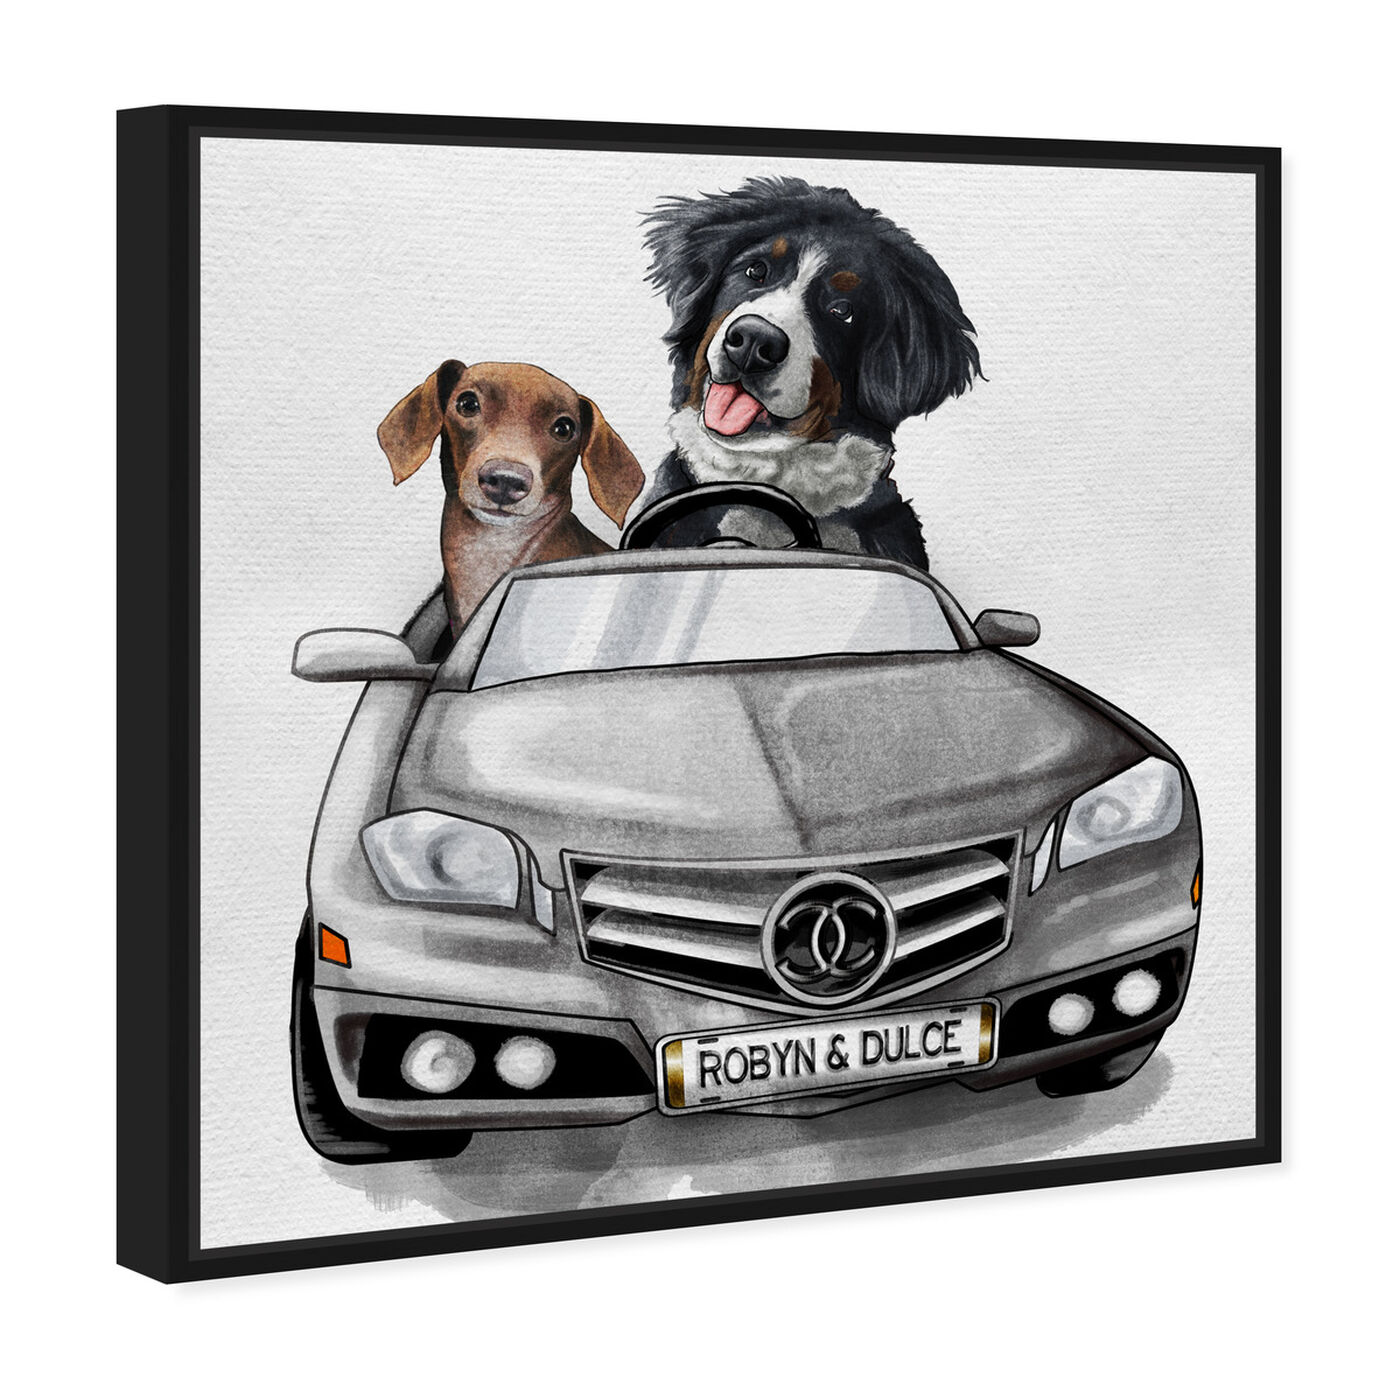 Angled view of Luxury Car Duo featuring fashion and glam and dogs and puppies art.